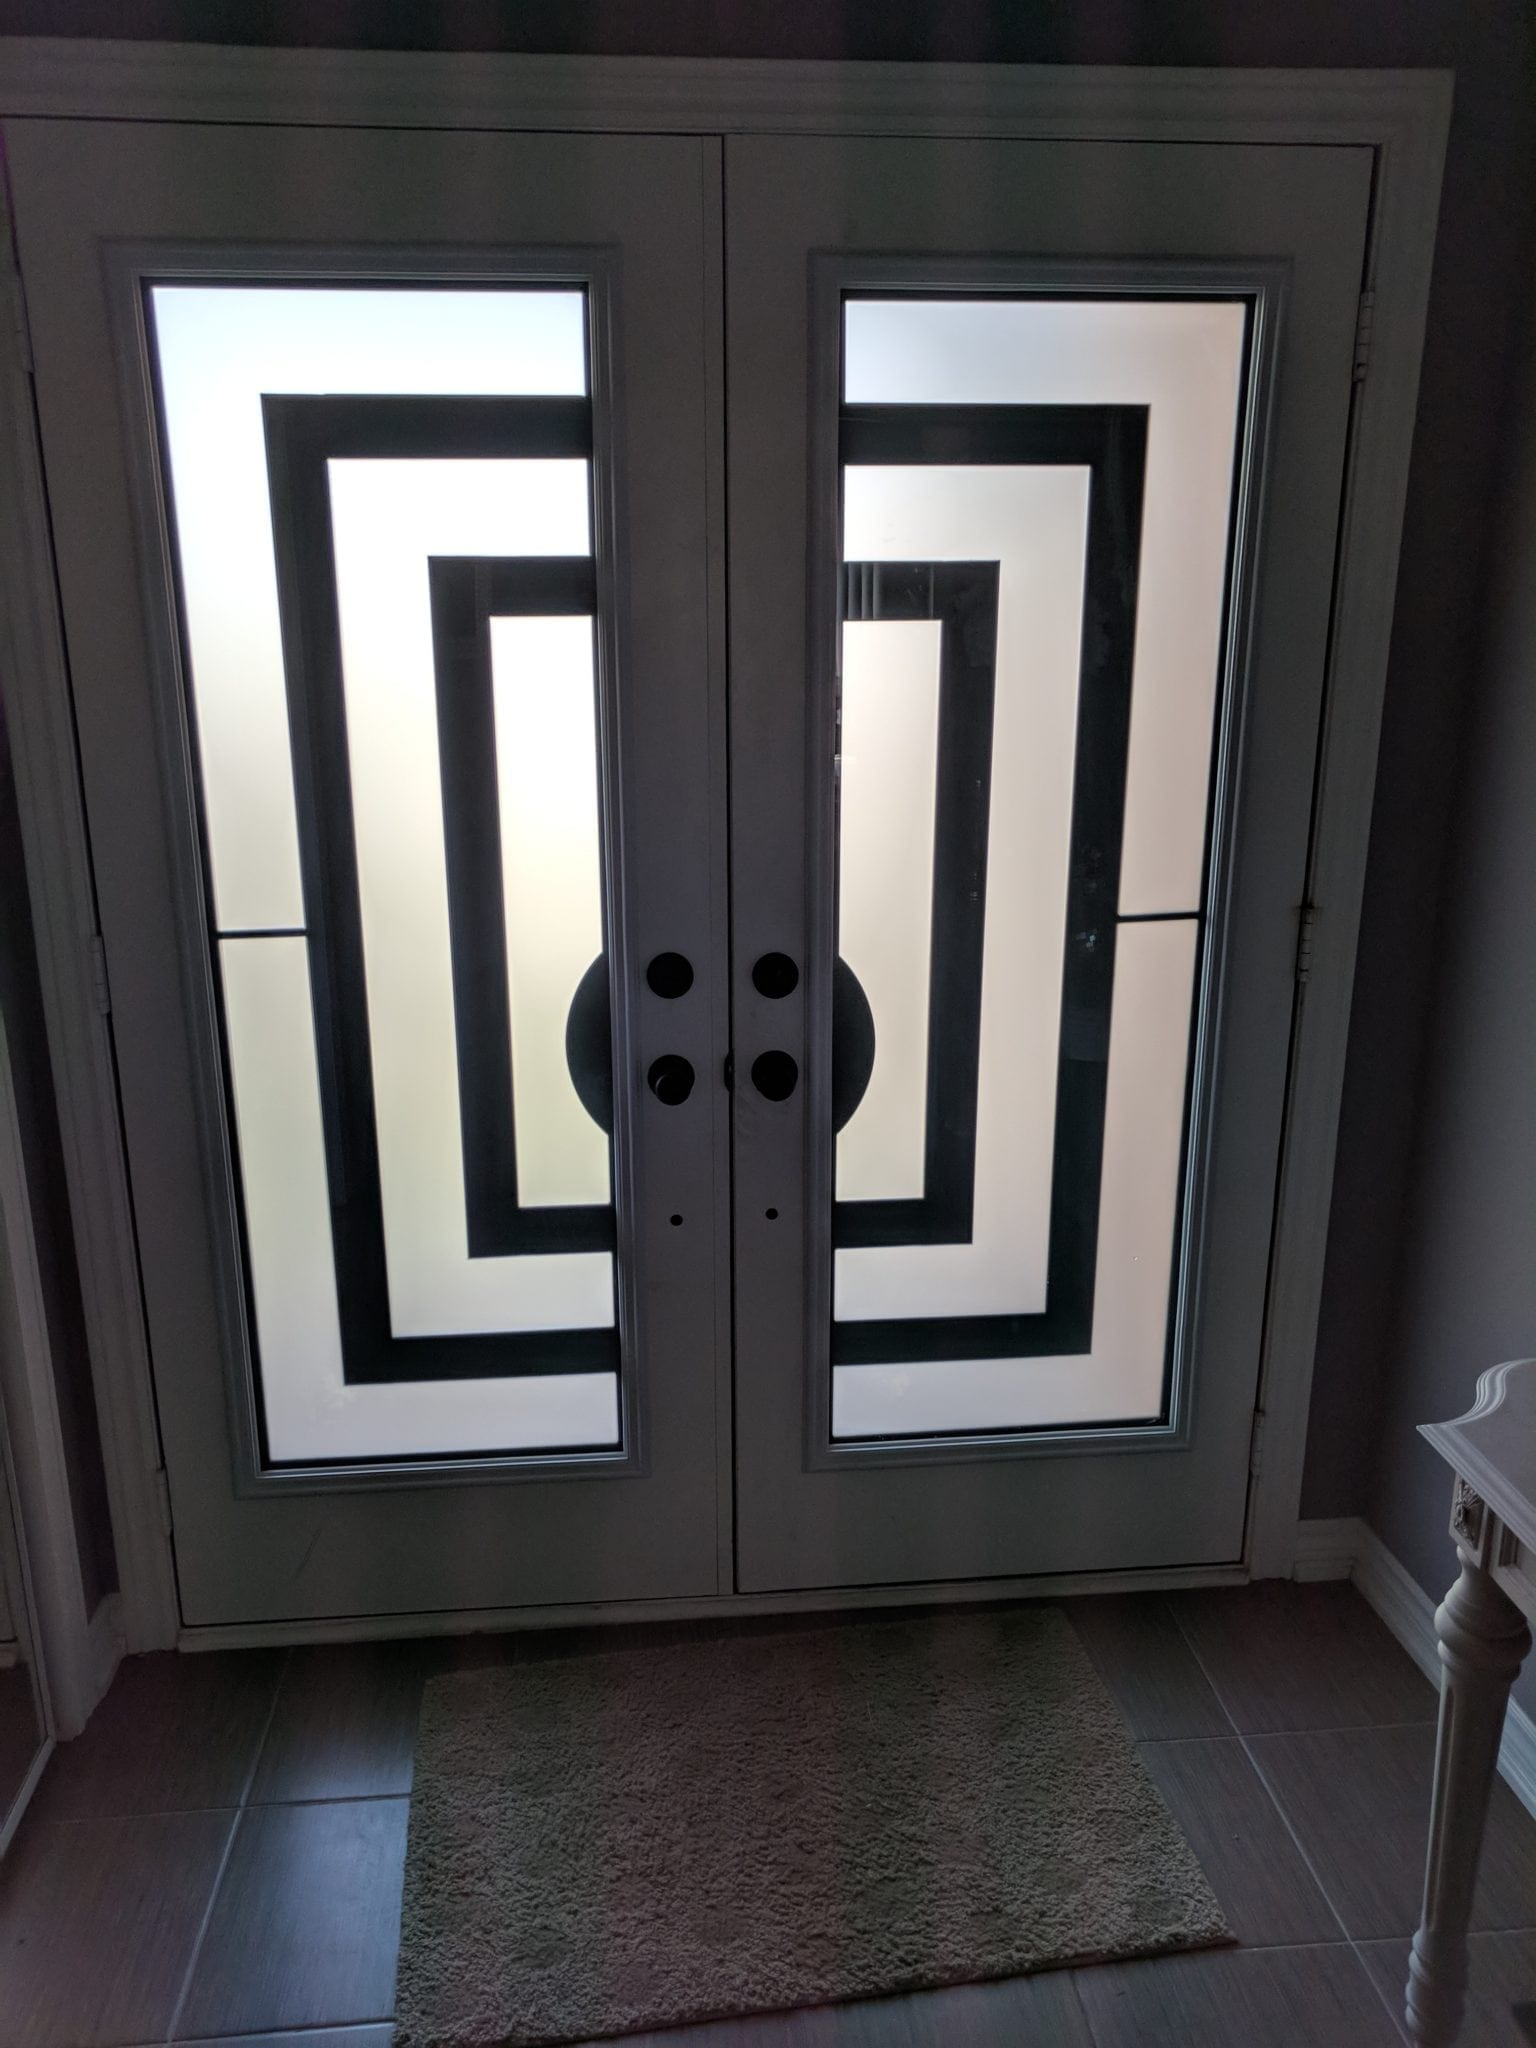 Door System plus 2 full size wrought iron inserts